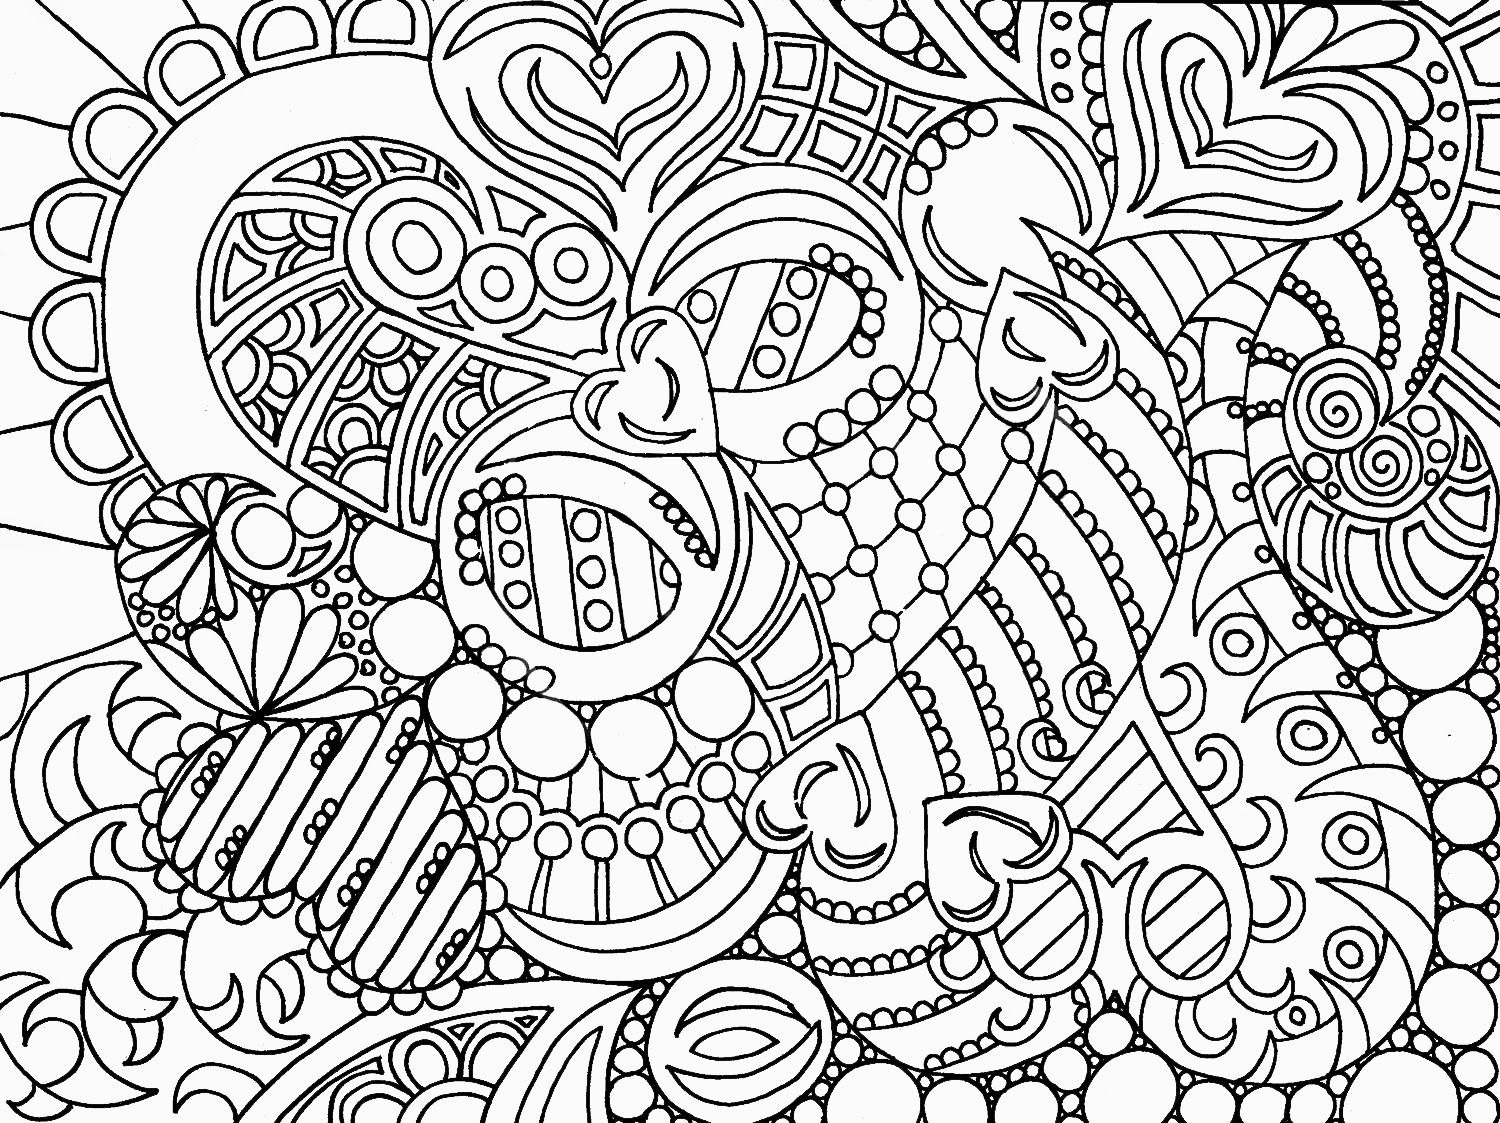 Free coloring pages for young adults - Abstract Coloring Pages Printable Coloring Pages Sheets For Kids Get The Latest Free Abstract Coloring Pages Images Favorite Coloring Pages To Print